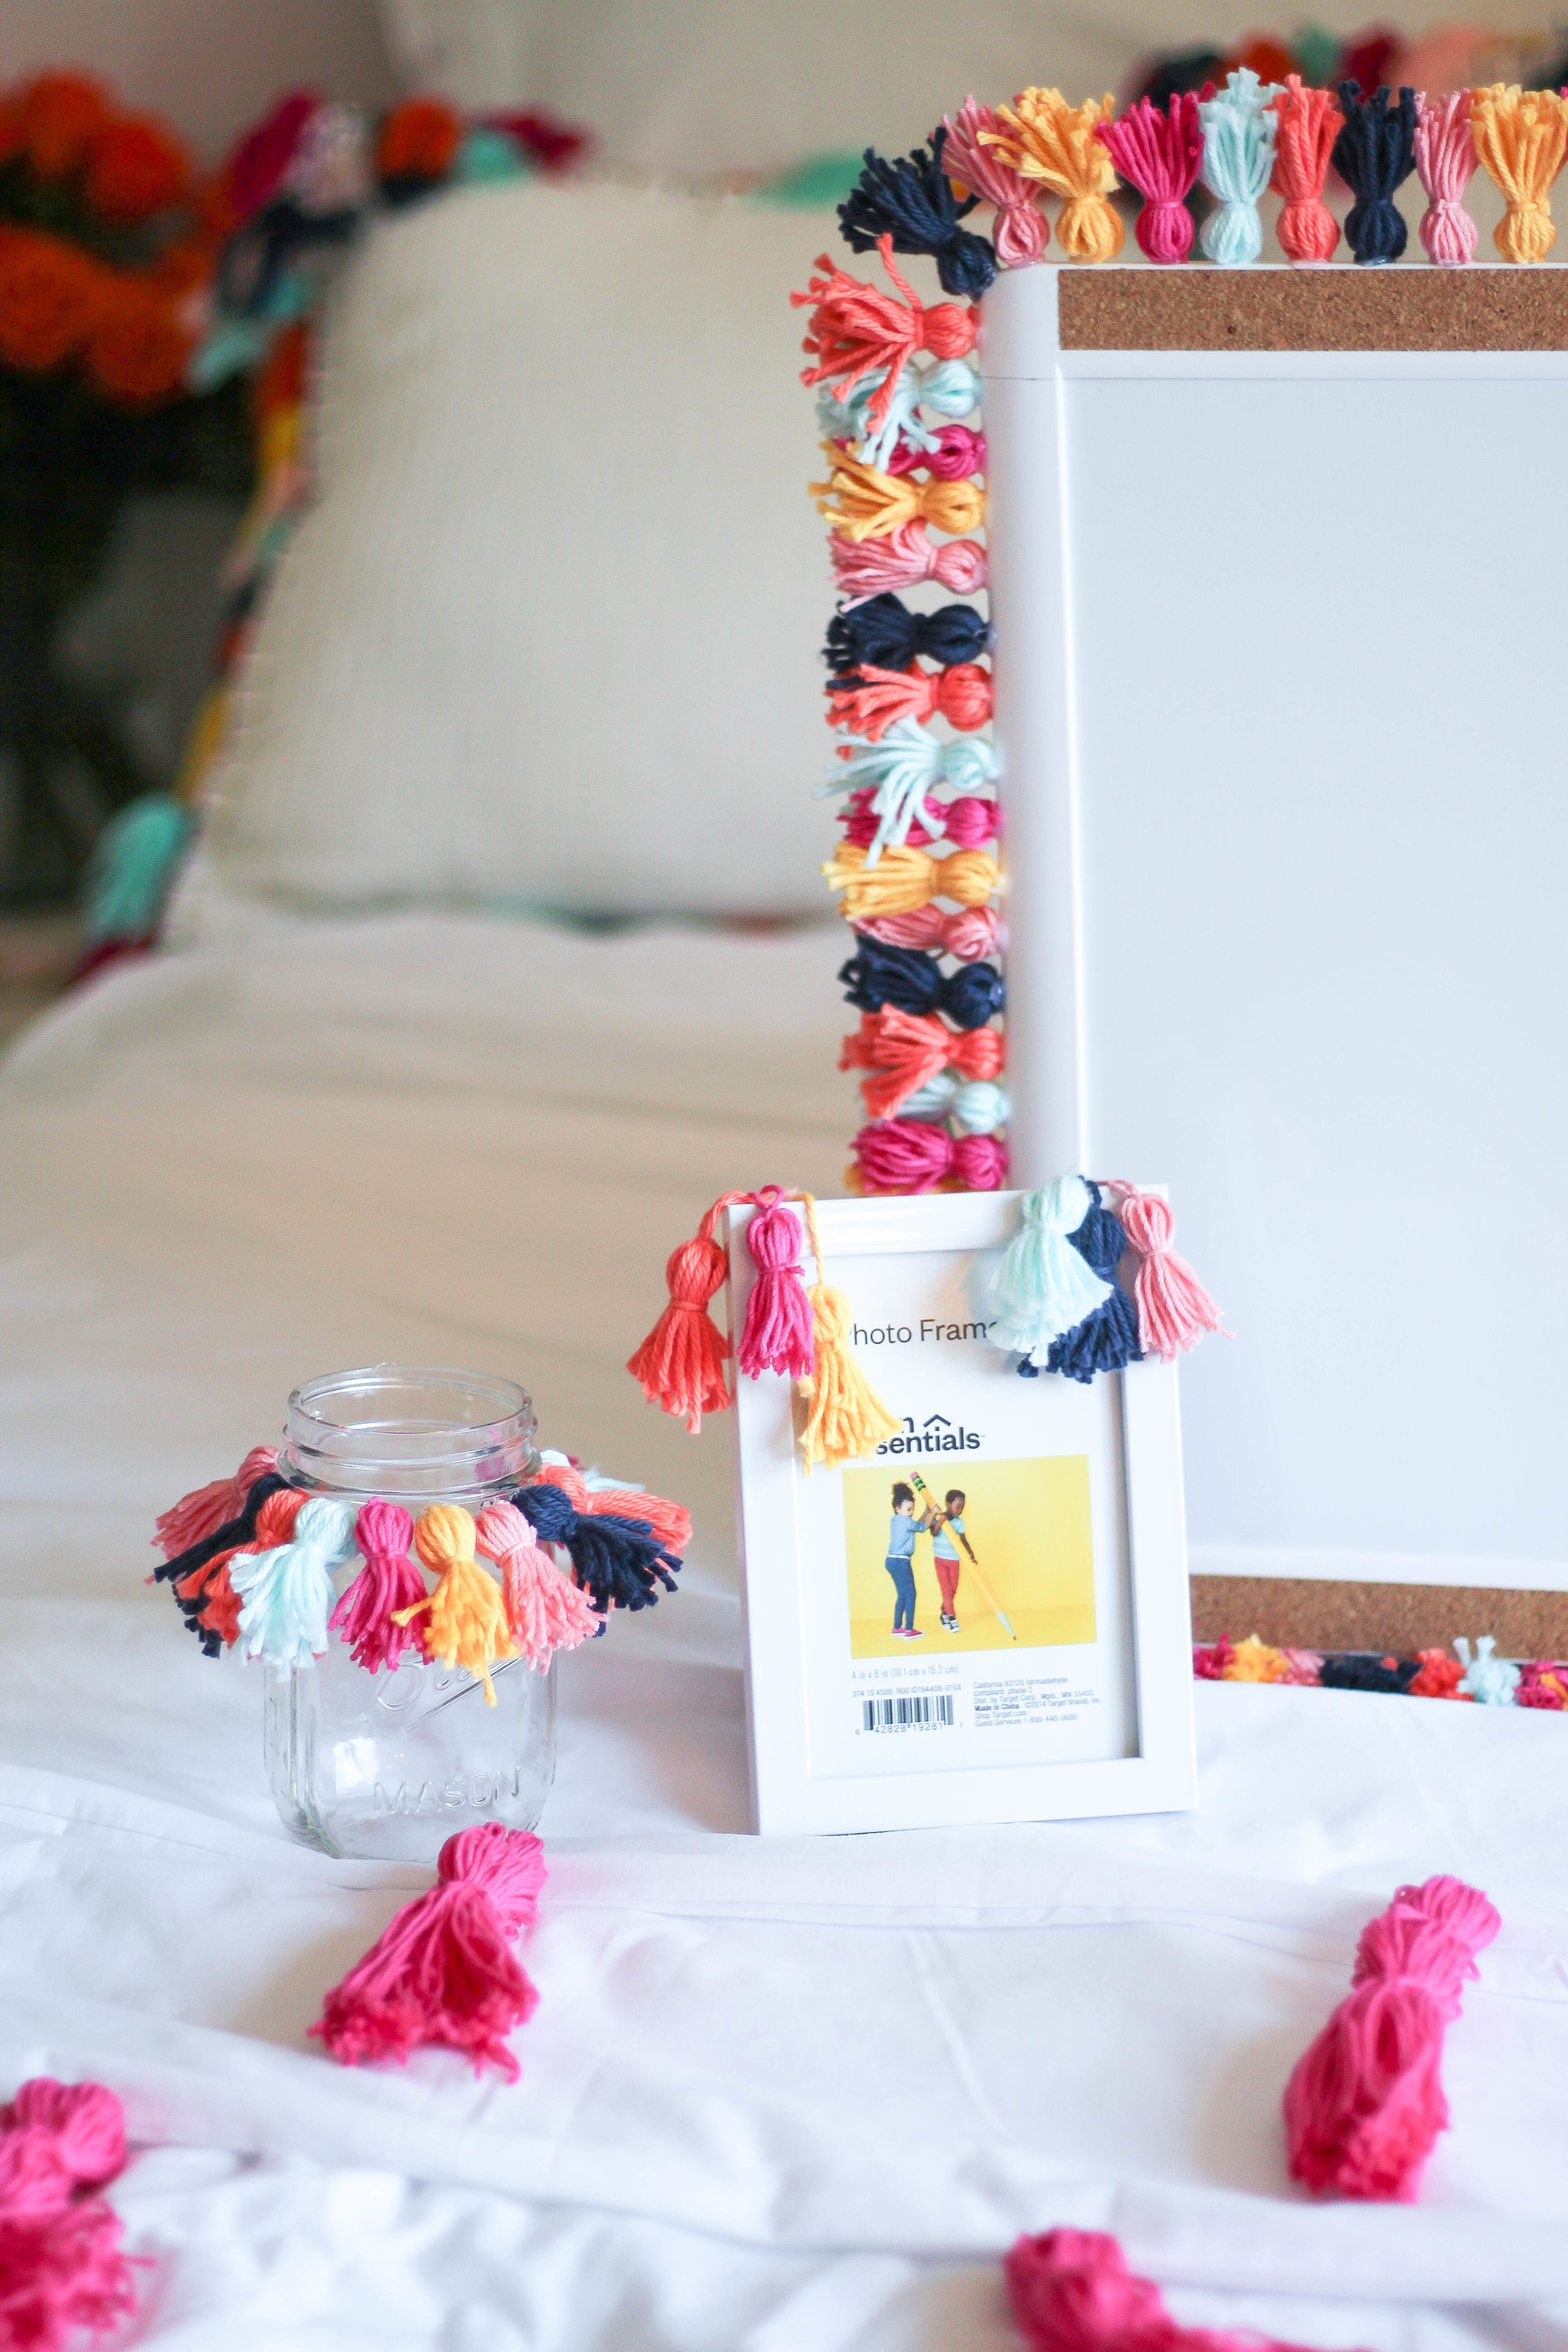 DIY Tassel bedding frame and crafts Tassel decor for dorm room by lauren lindmark on daily dose of charm